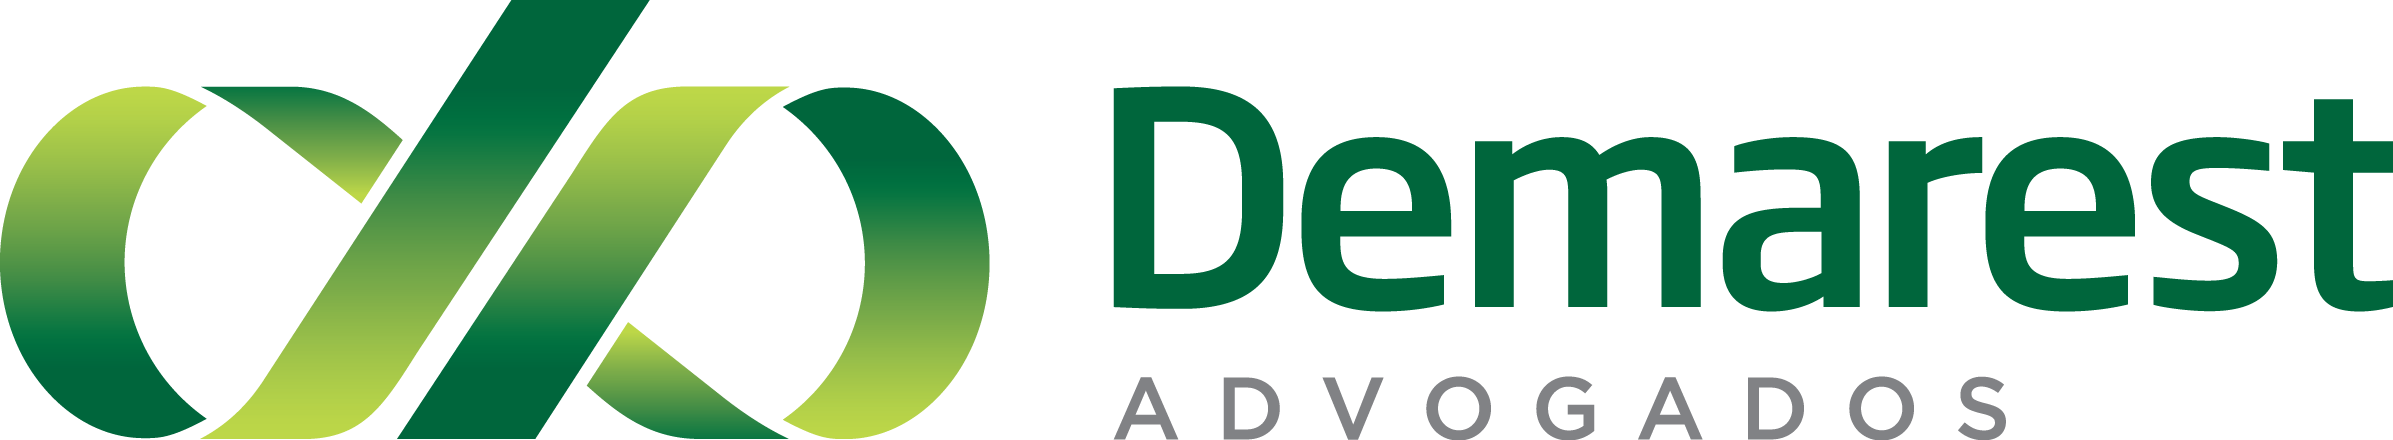 Demarest logo